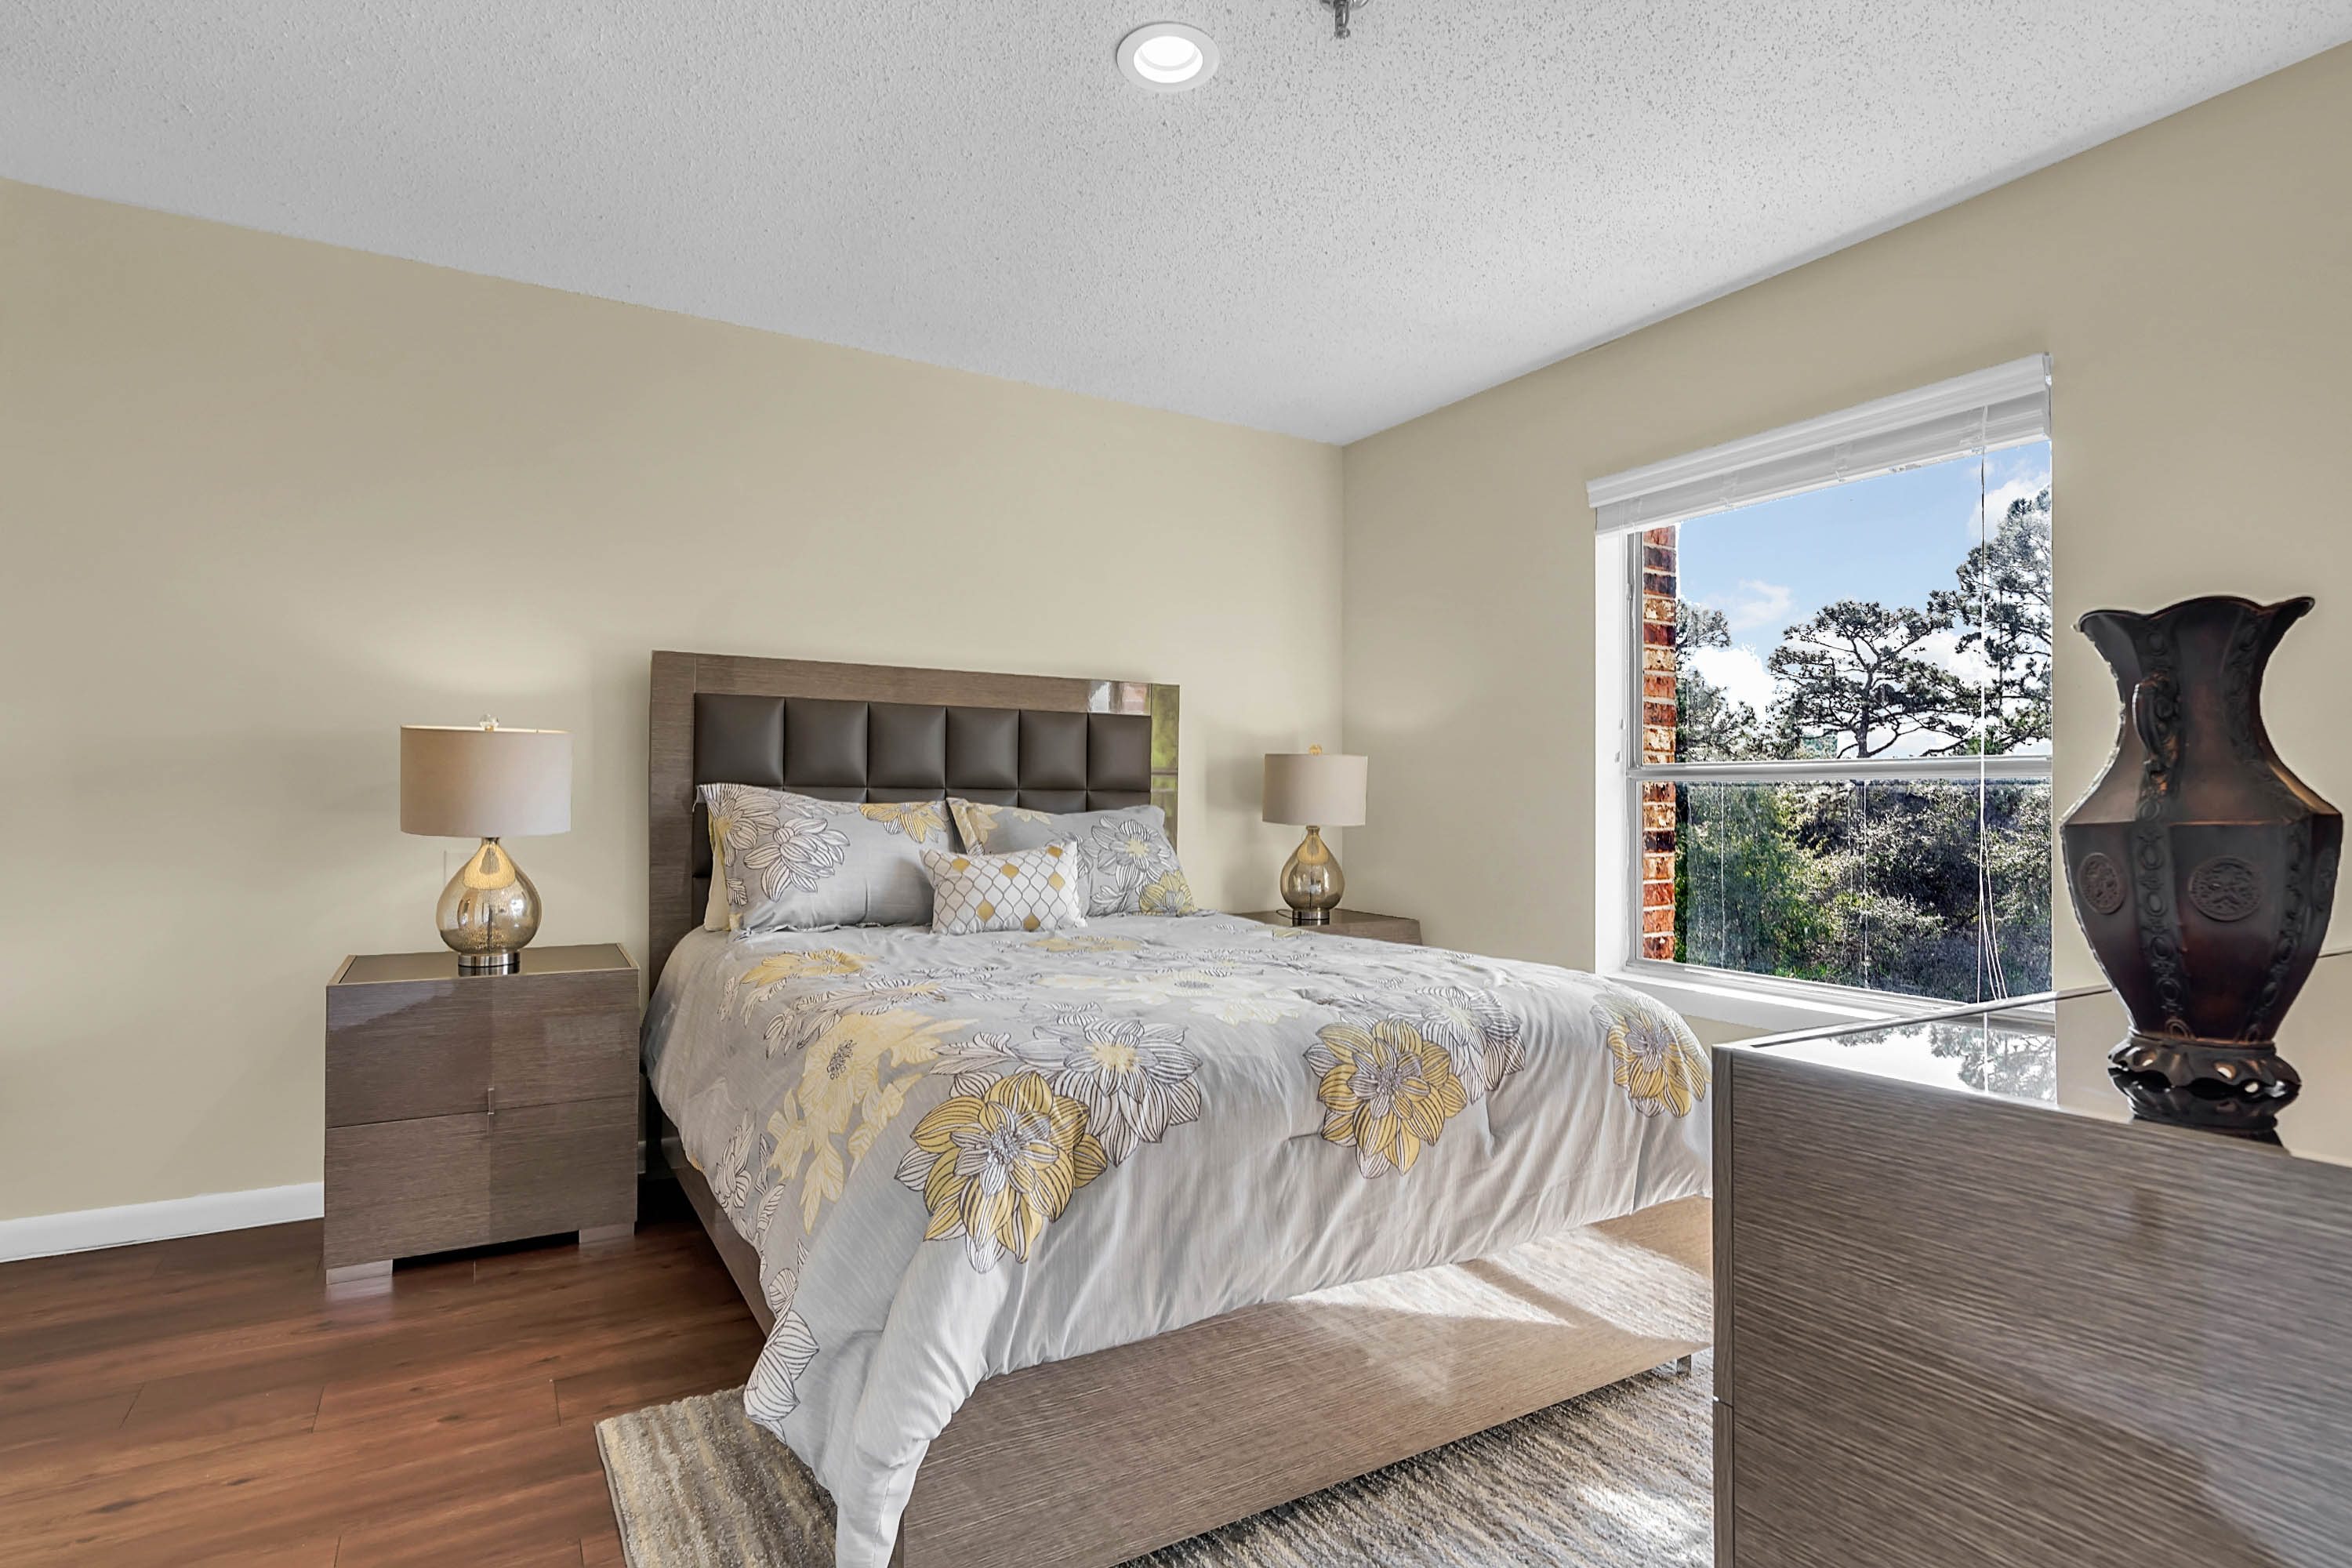 Bedroom at Renaissance Retirement Center in Sanford, Florida